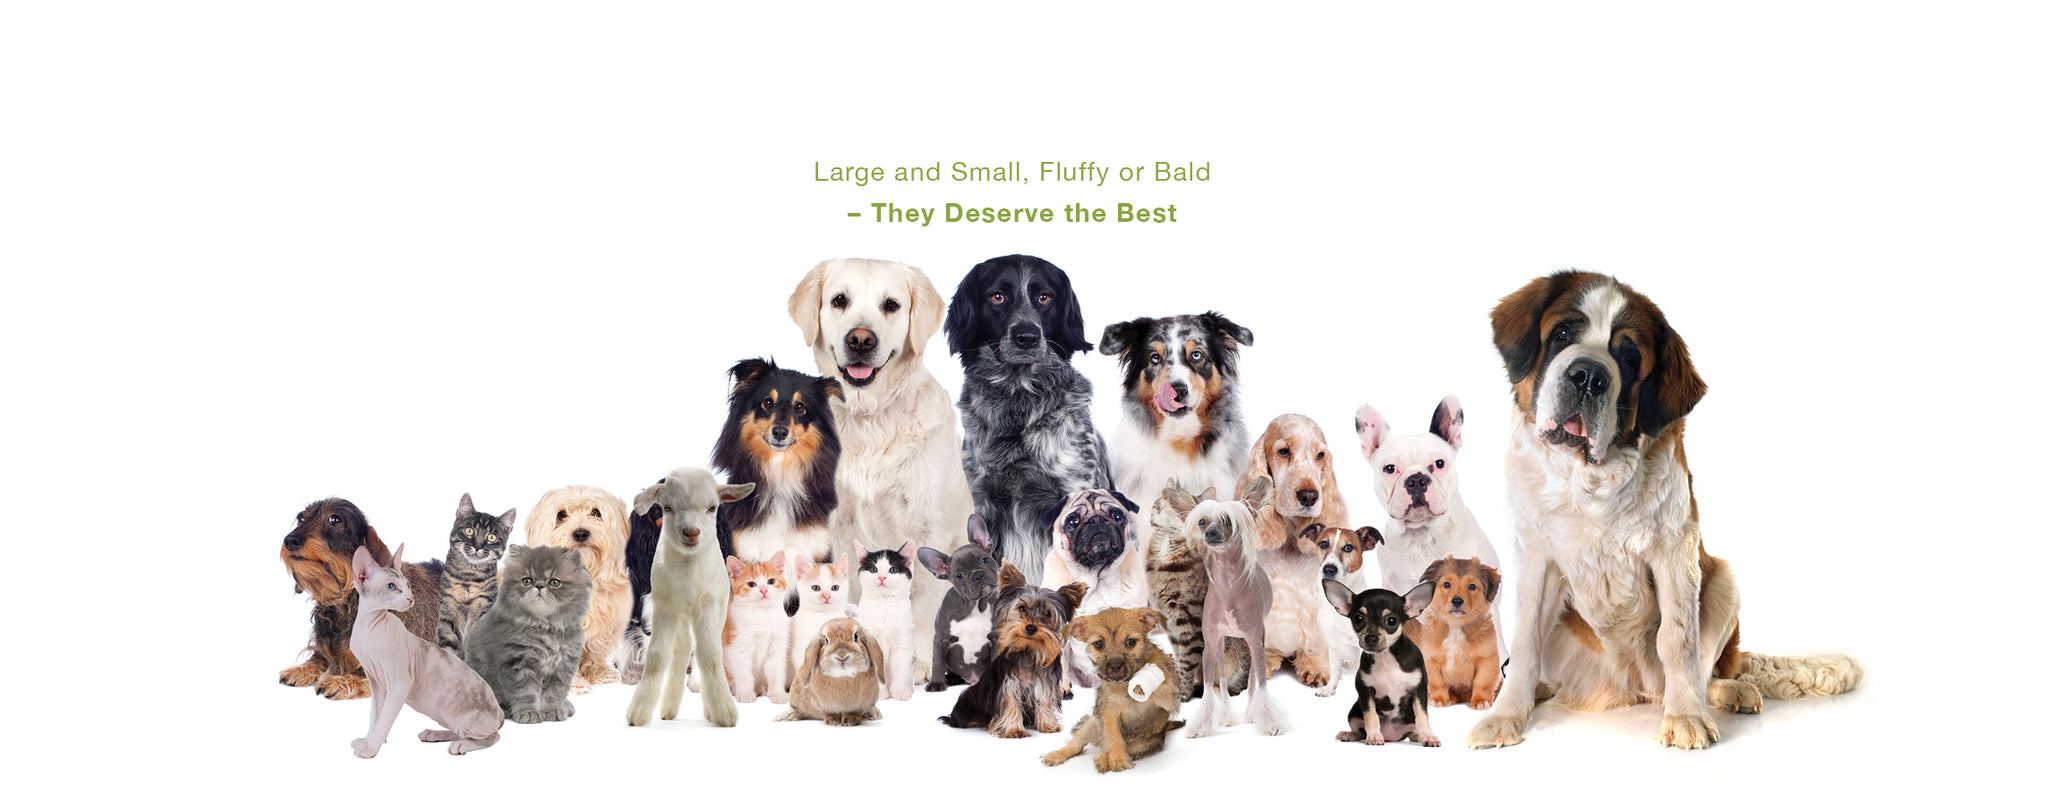 collection of different size, appearance and breed of dogs, cats, rabbits, goats